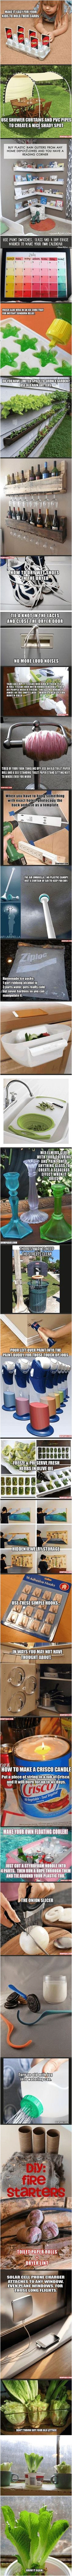 garden state gutter cleaning unique 2619 best life hacks images on pinterest